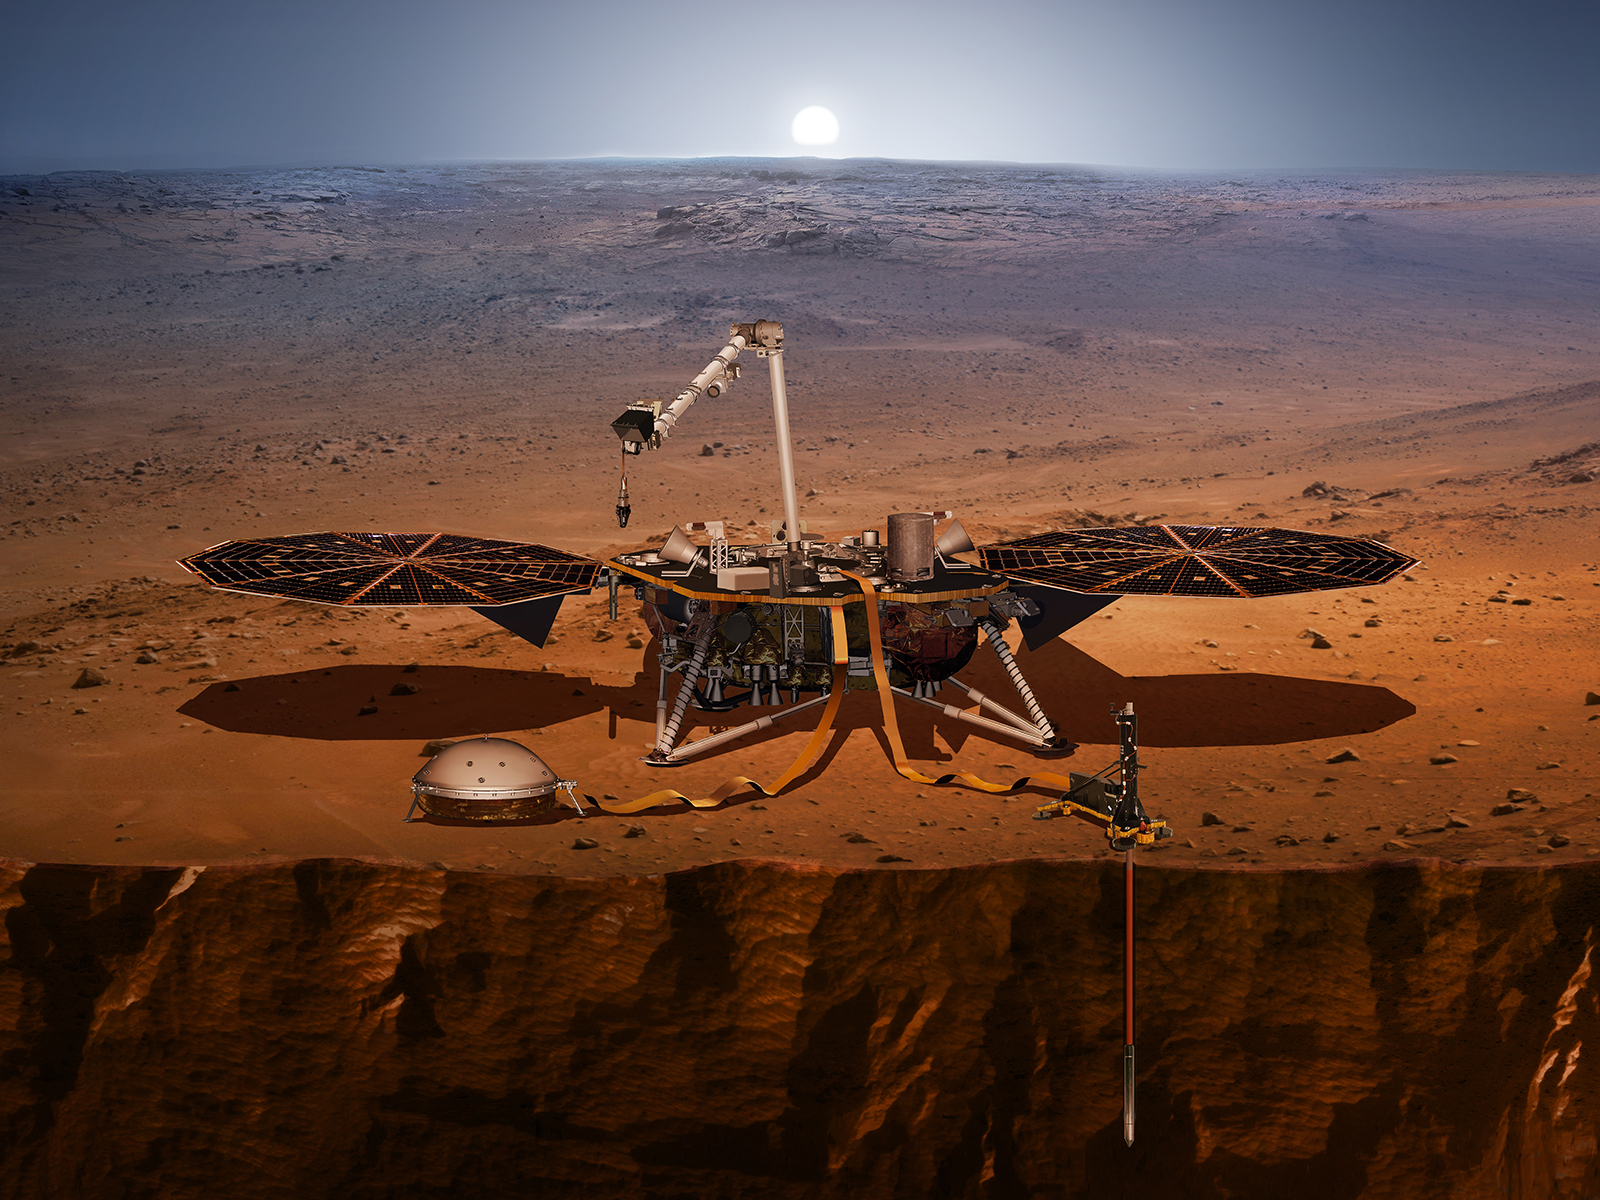 slide 2 - This artist's concept shows the InSight lander, its sensors, cameras and instruments.